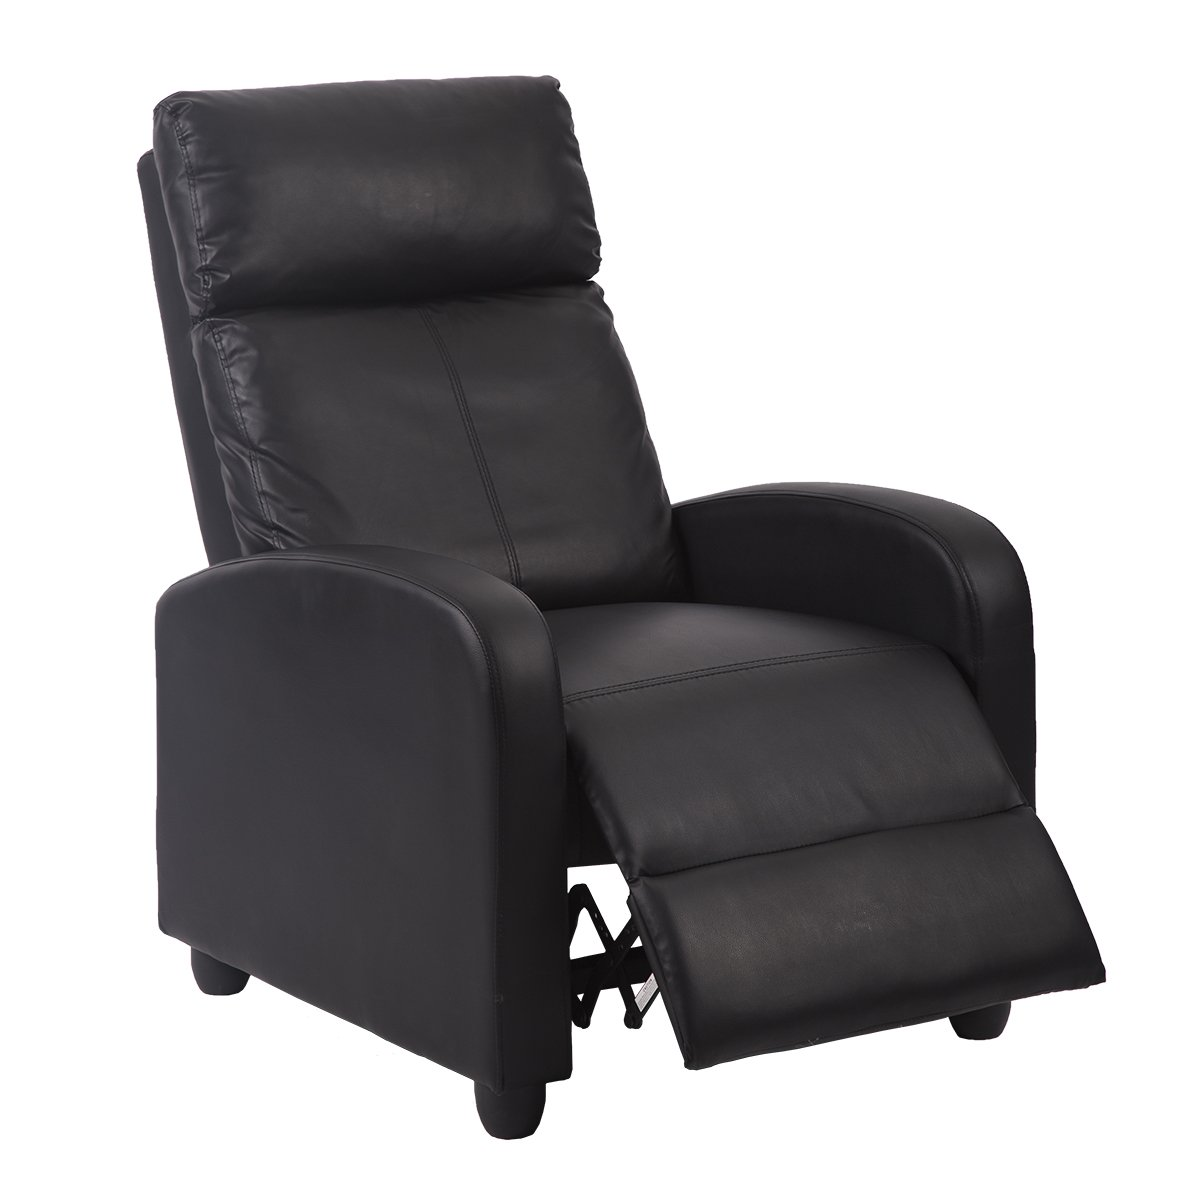 Contemporary Chaise Lounge Sofa: Black Modern Leather Chaise Couch Single Recliner Chair